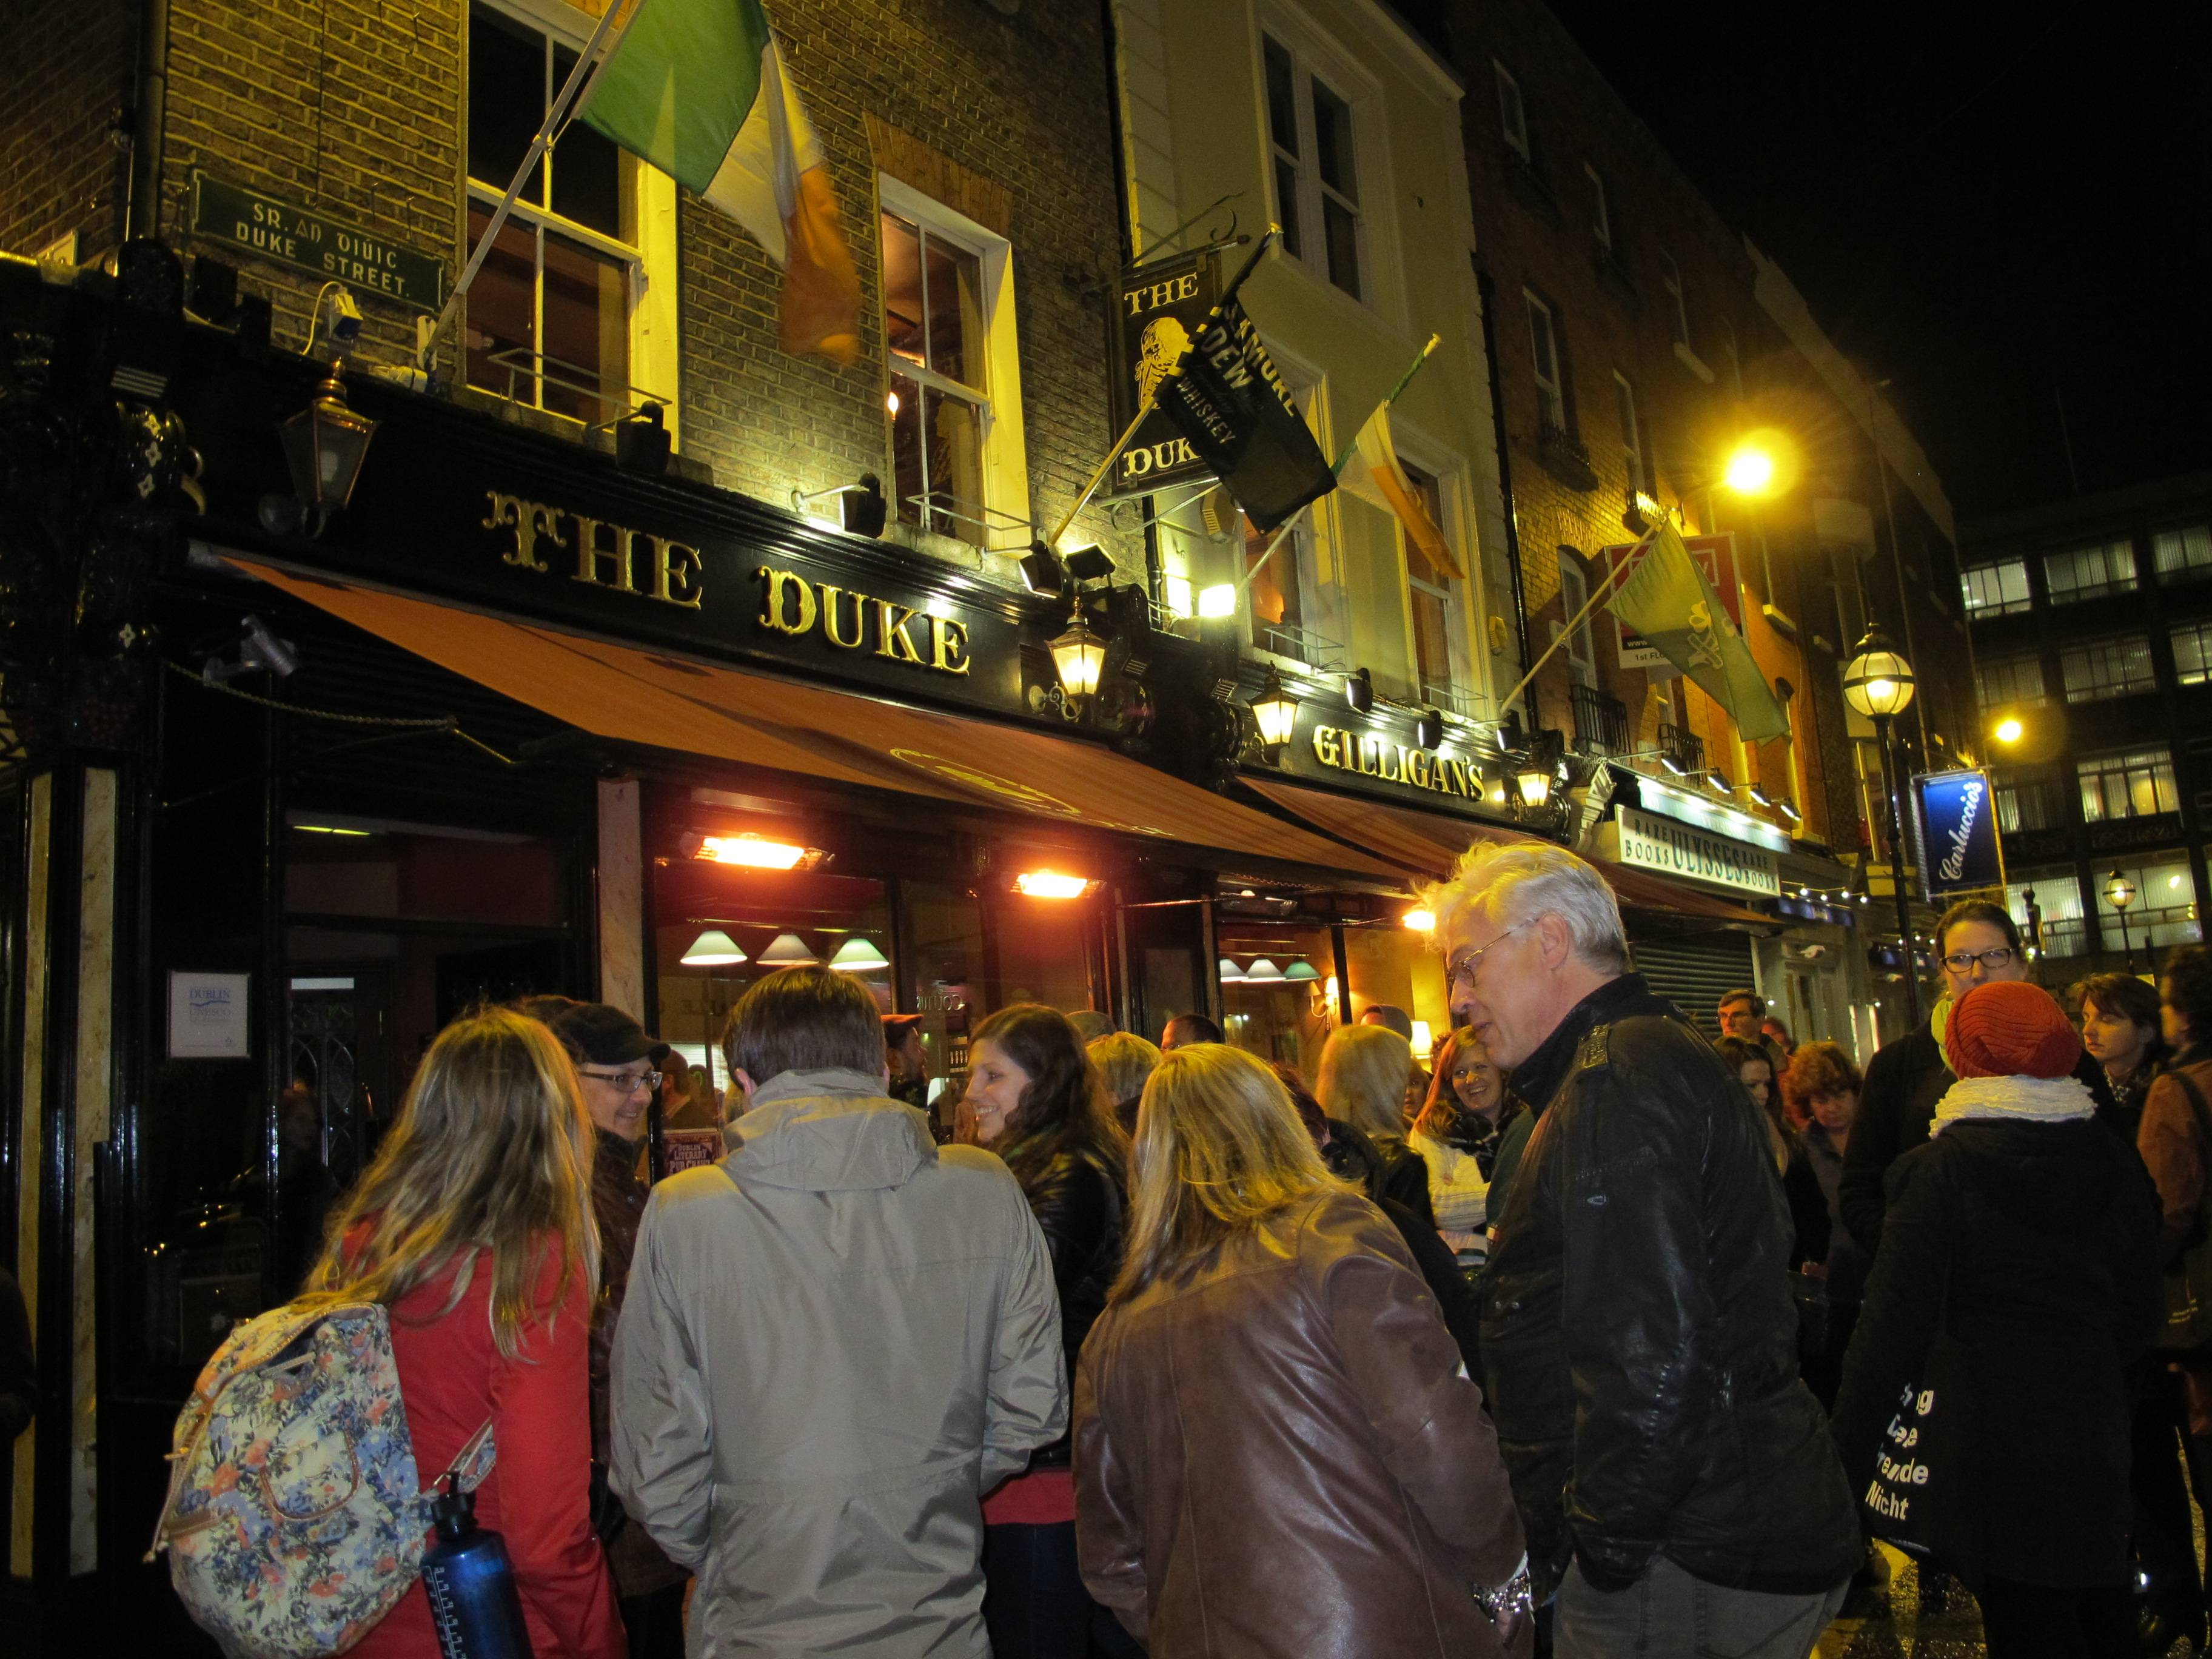 People gather outside the Duke pub in Dublin, Ireland, at the start of a literary pub-crawl. The literary tour takes visitors to several pubs as actors re-enact scenes from the works of James Joyce, Brendan Behan, Oscar Wilde and others.